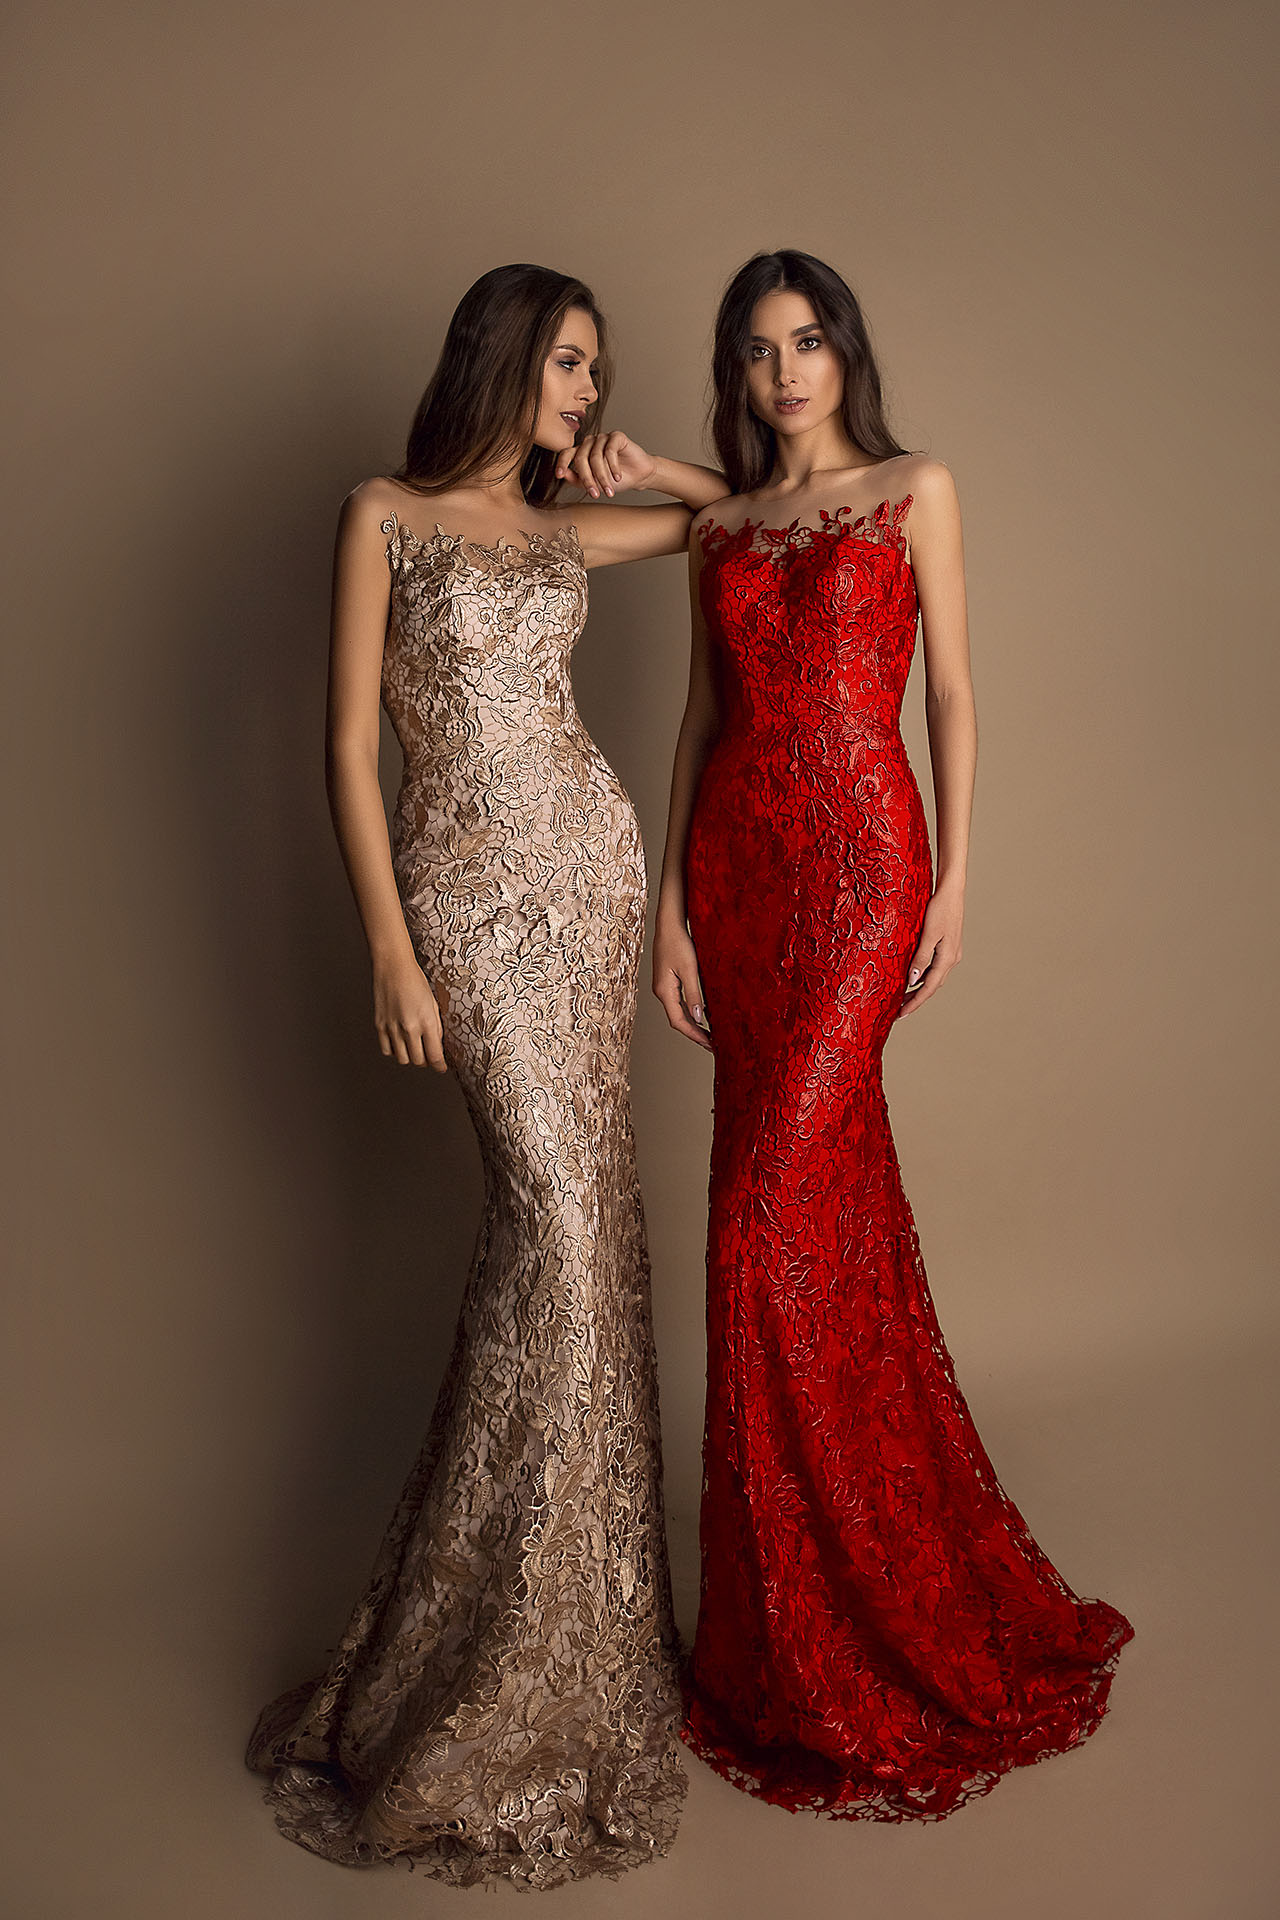 Evening Dresses 1603 Silhouette  Fitted  Color  Cappuccino  Red  Neckline  Sweetheart  Illusion  Sleeves  Sleeveless  Train  No train